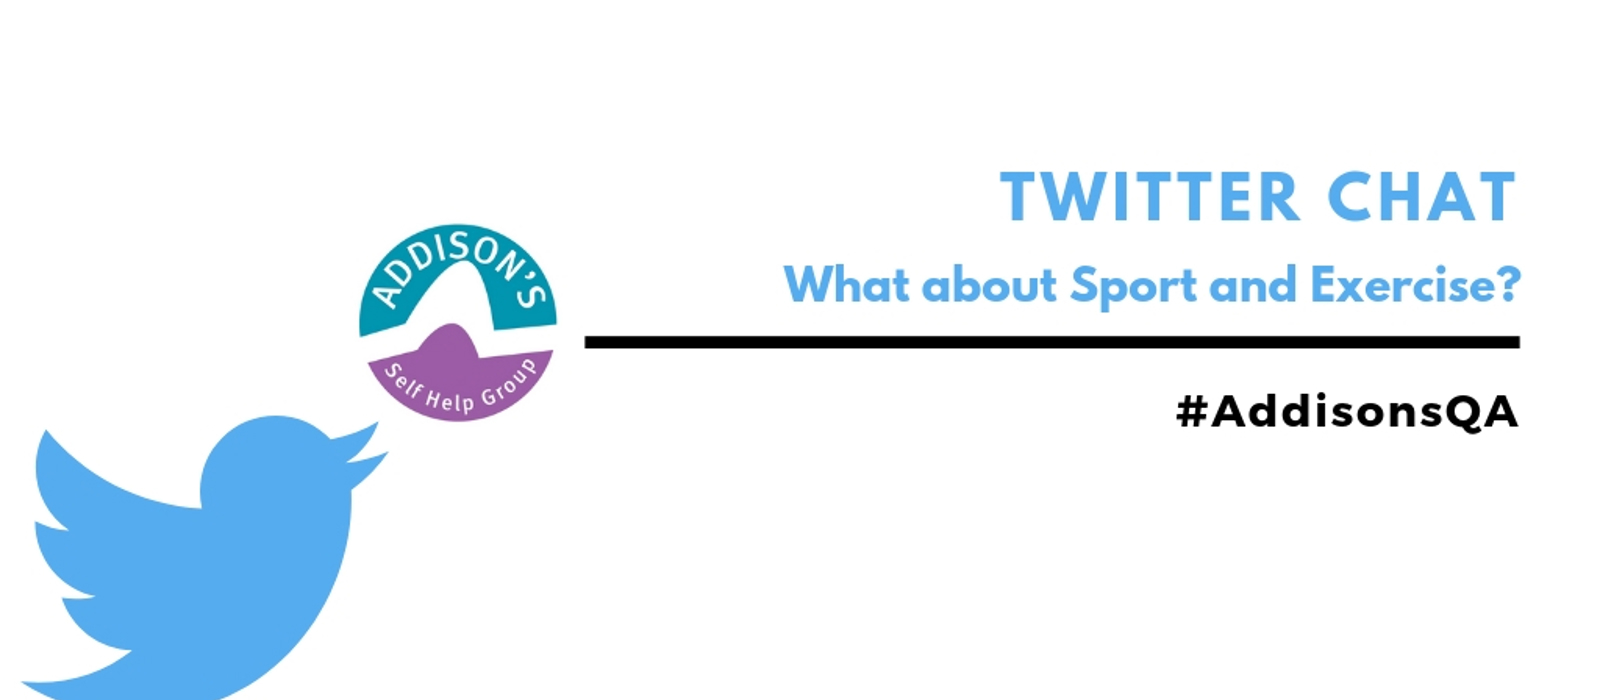 Twitter Chat – What About Sport and Exercise? - 26/08/2019